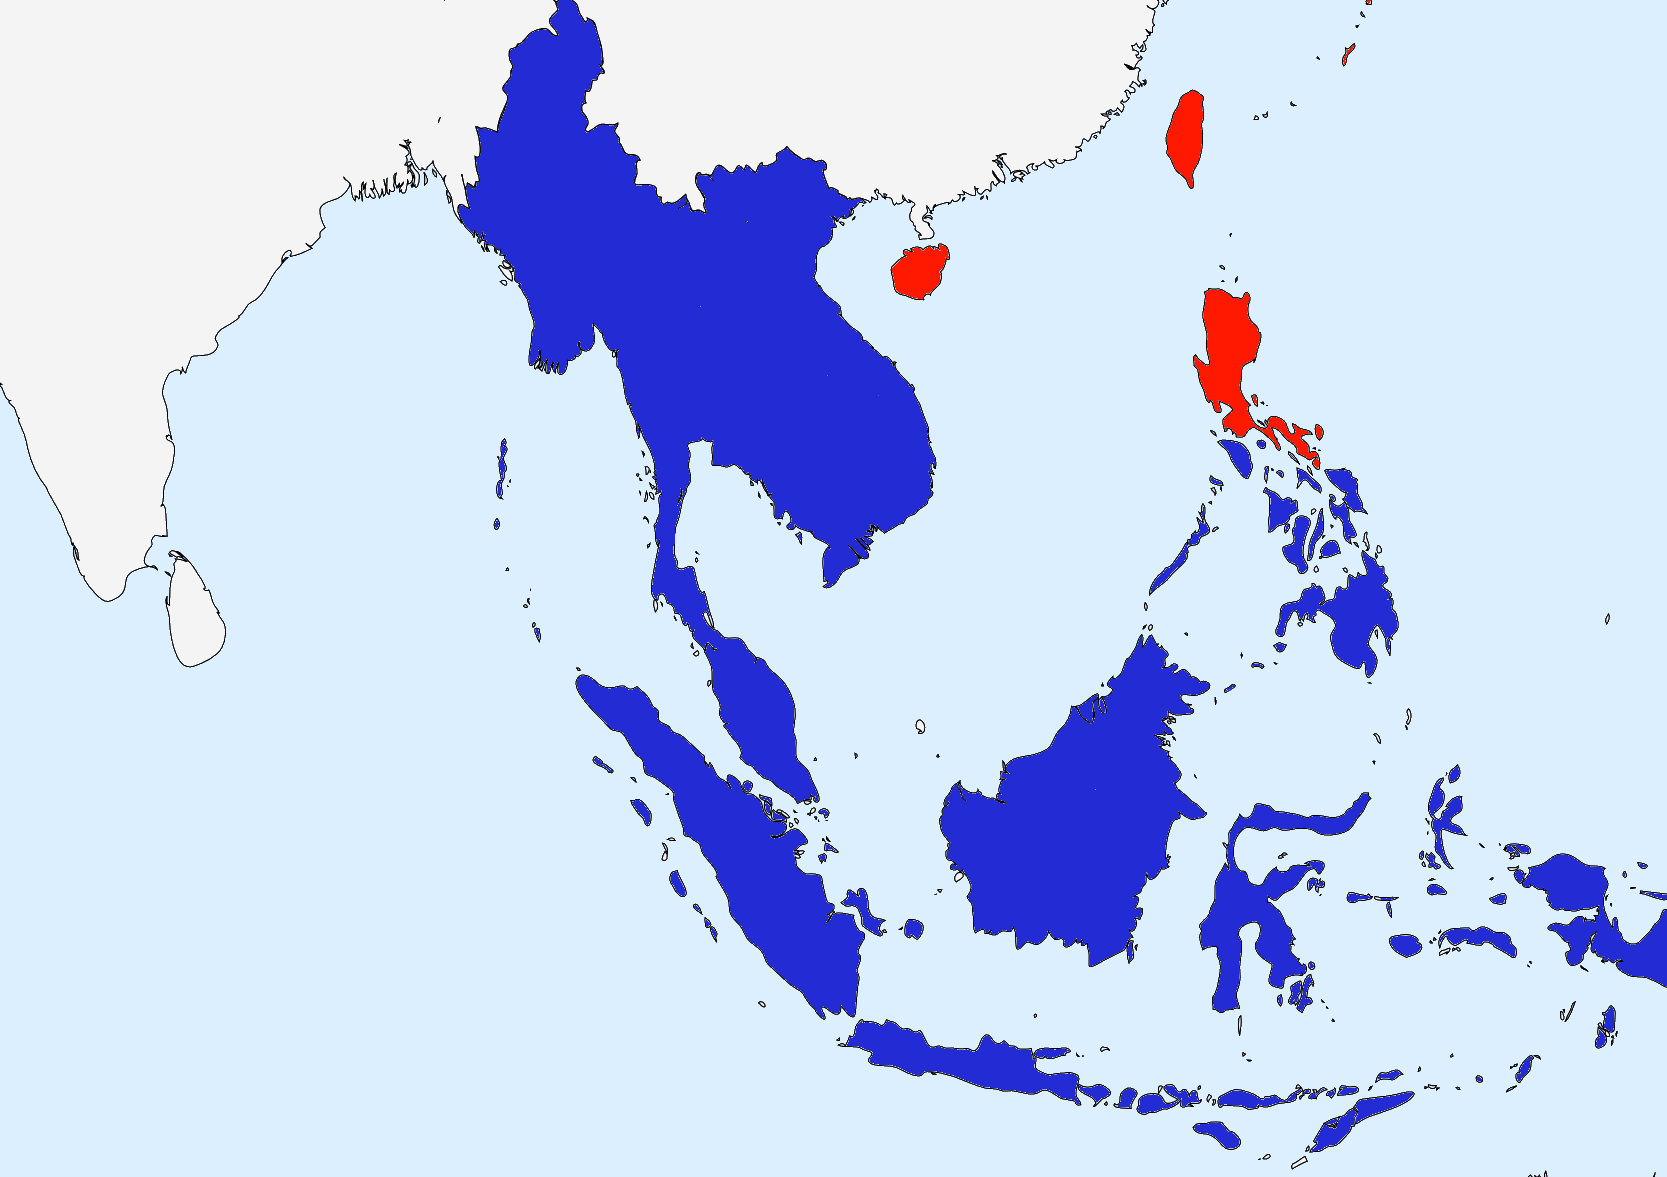 Majapahit Empire vs Srivijaya Empire - Empires Comparison